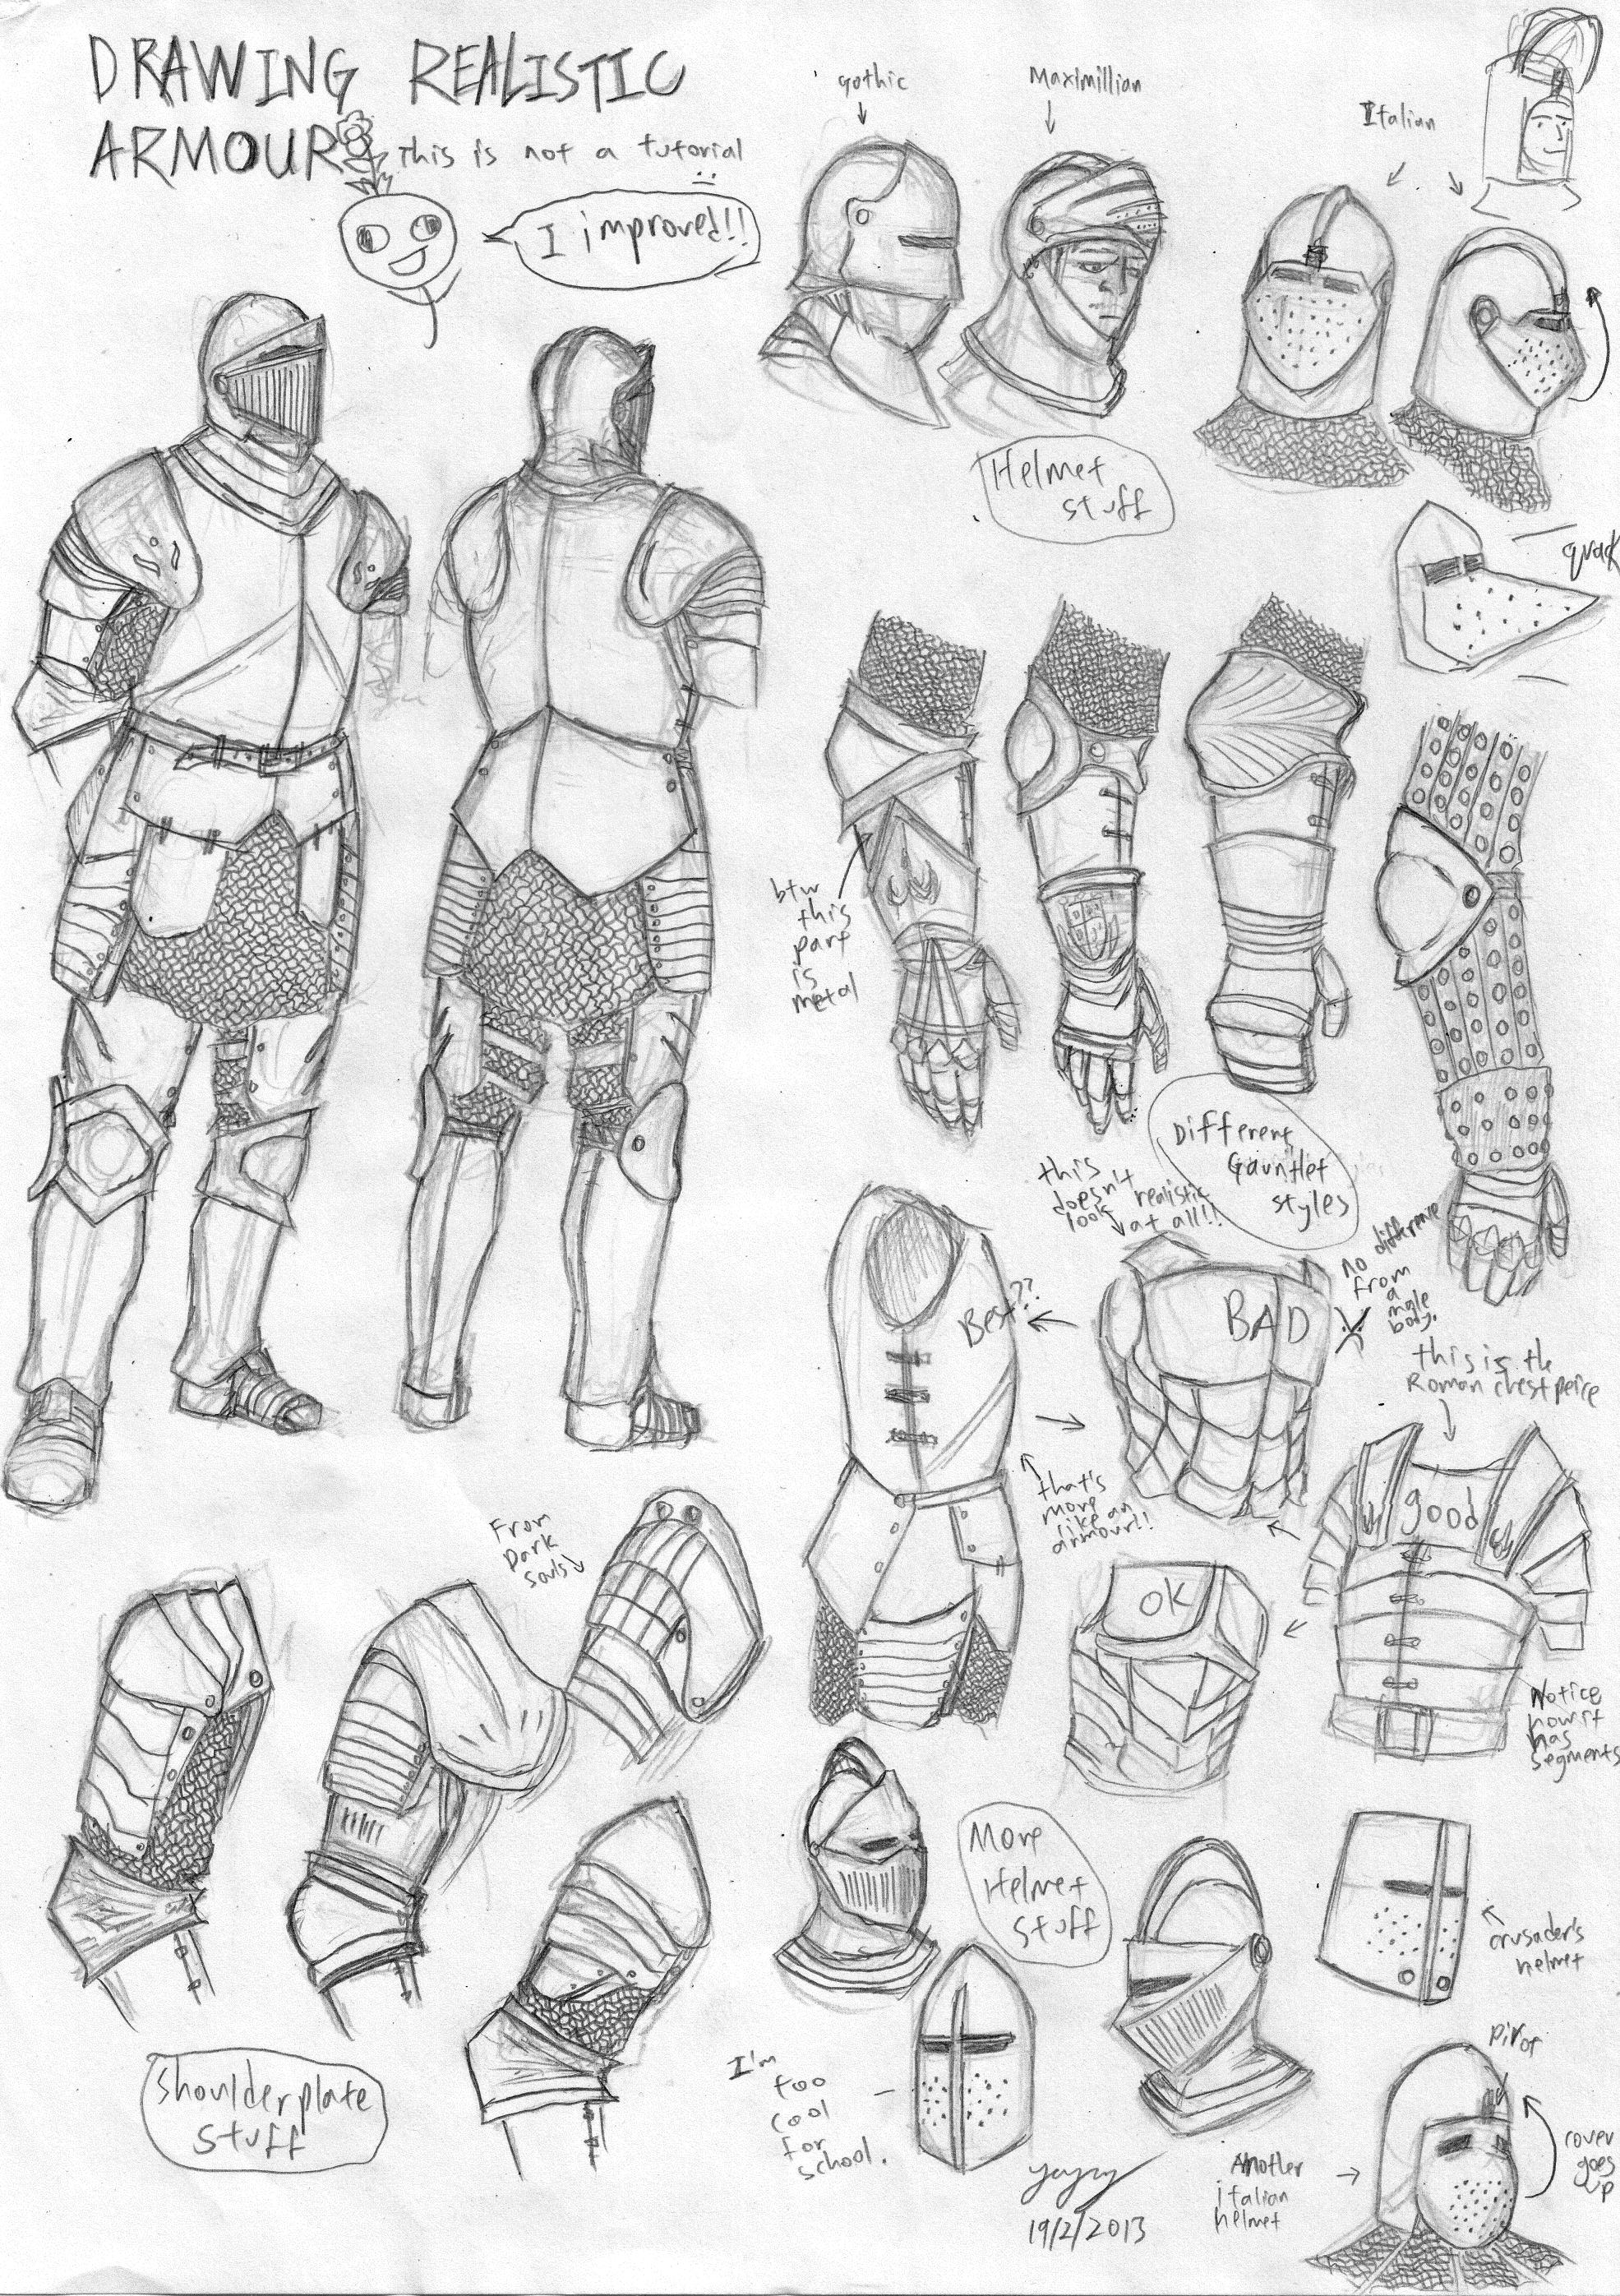 draw male armor - Google Search | Drawing | Pinterest ...